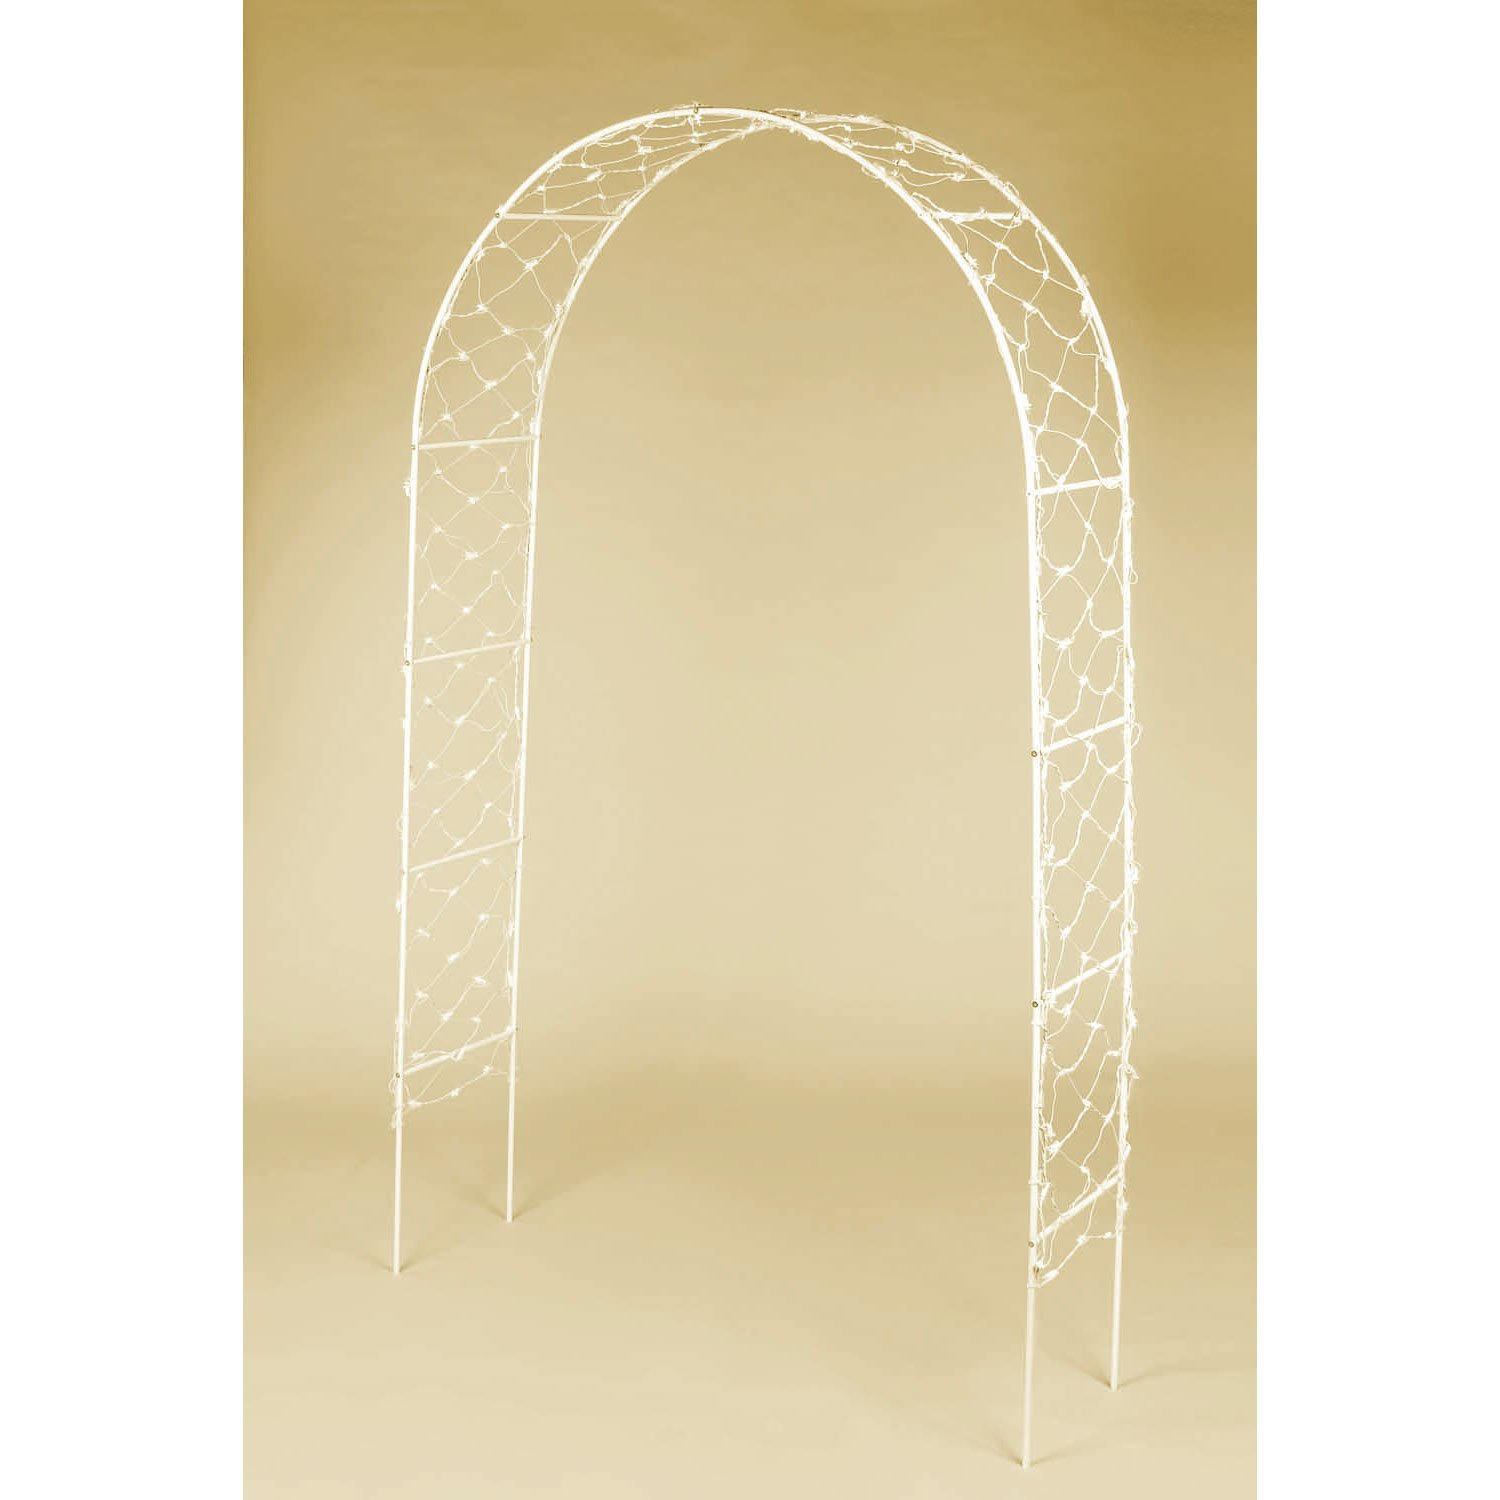 Amscan Traditional White Wedding Arch Party Decoration, Metal, 8'